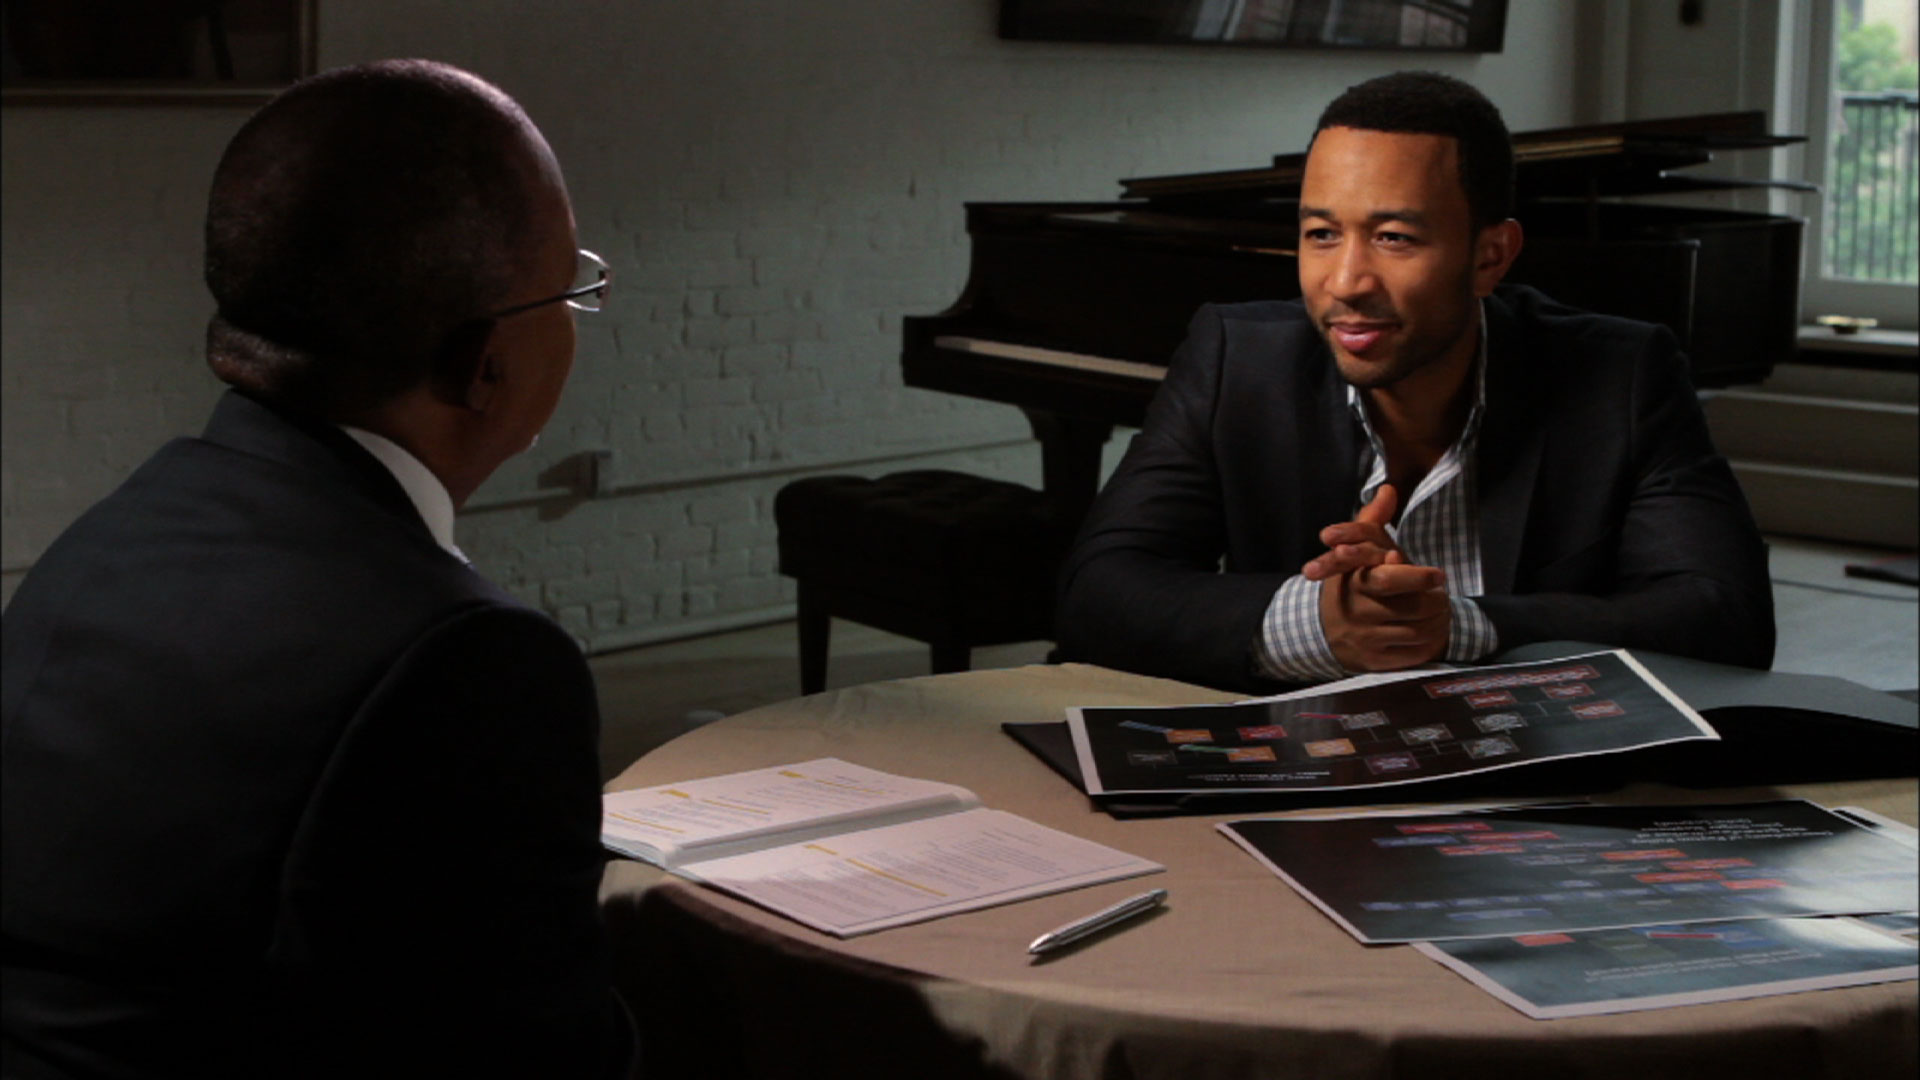 Full Episode: John Legend and Wanda Sykes